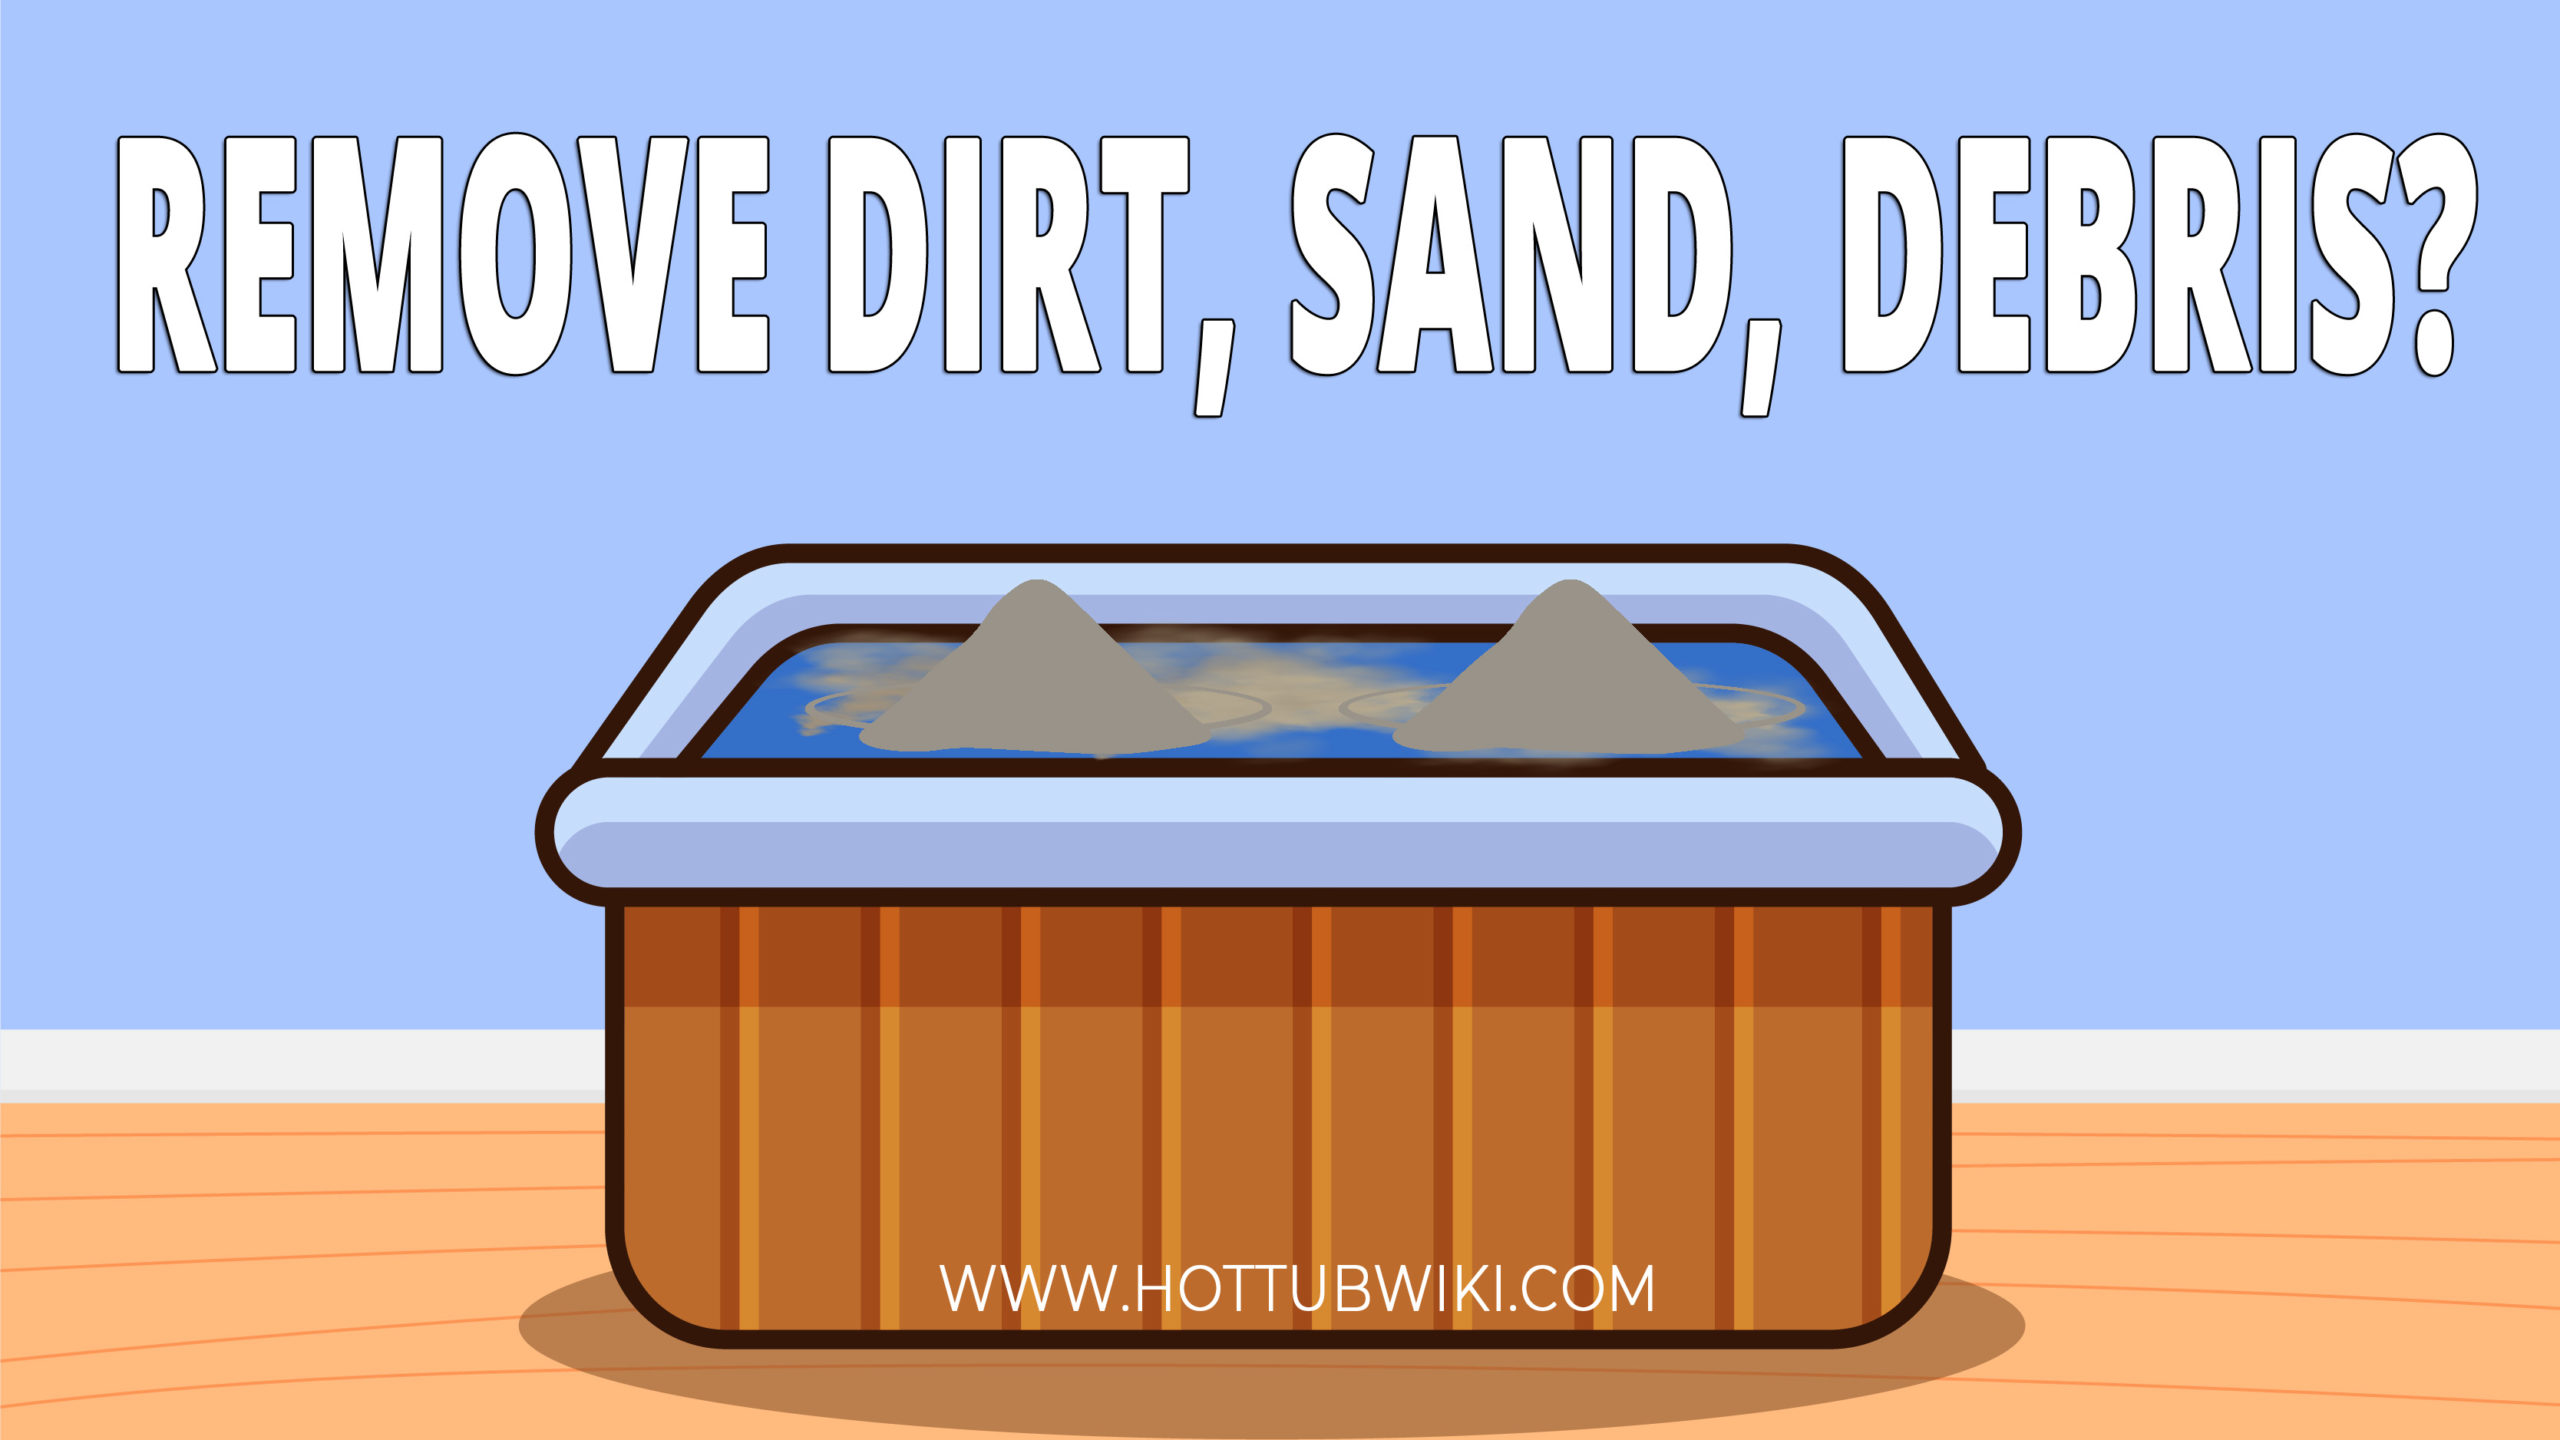 If you got dirt, sand, or debris in your hot tub, don't worry. We will teach you how to get rid of dirt and debris from your hot tub, and much more.